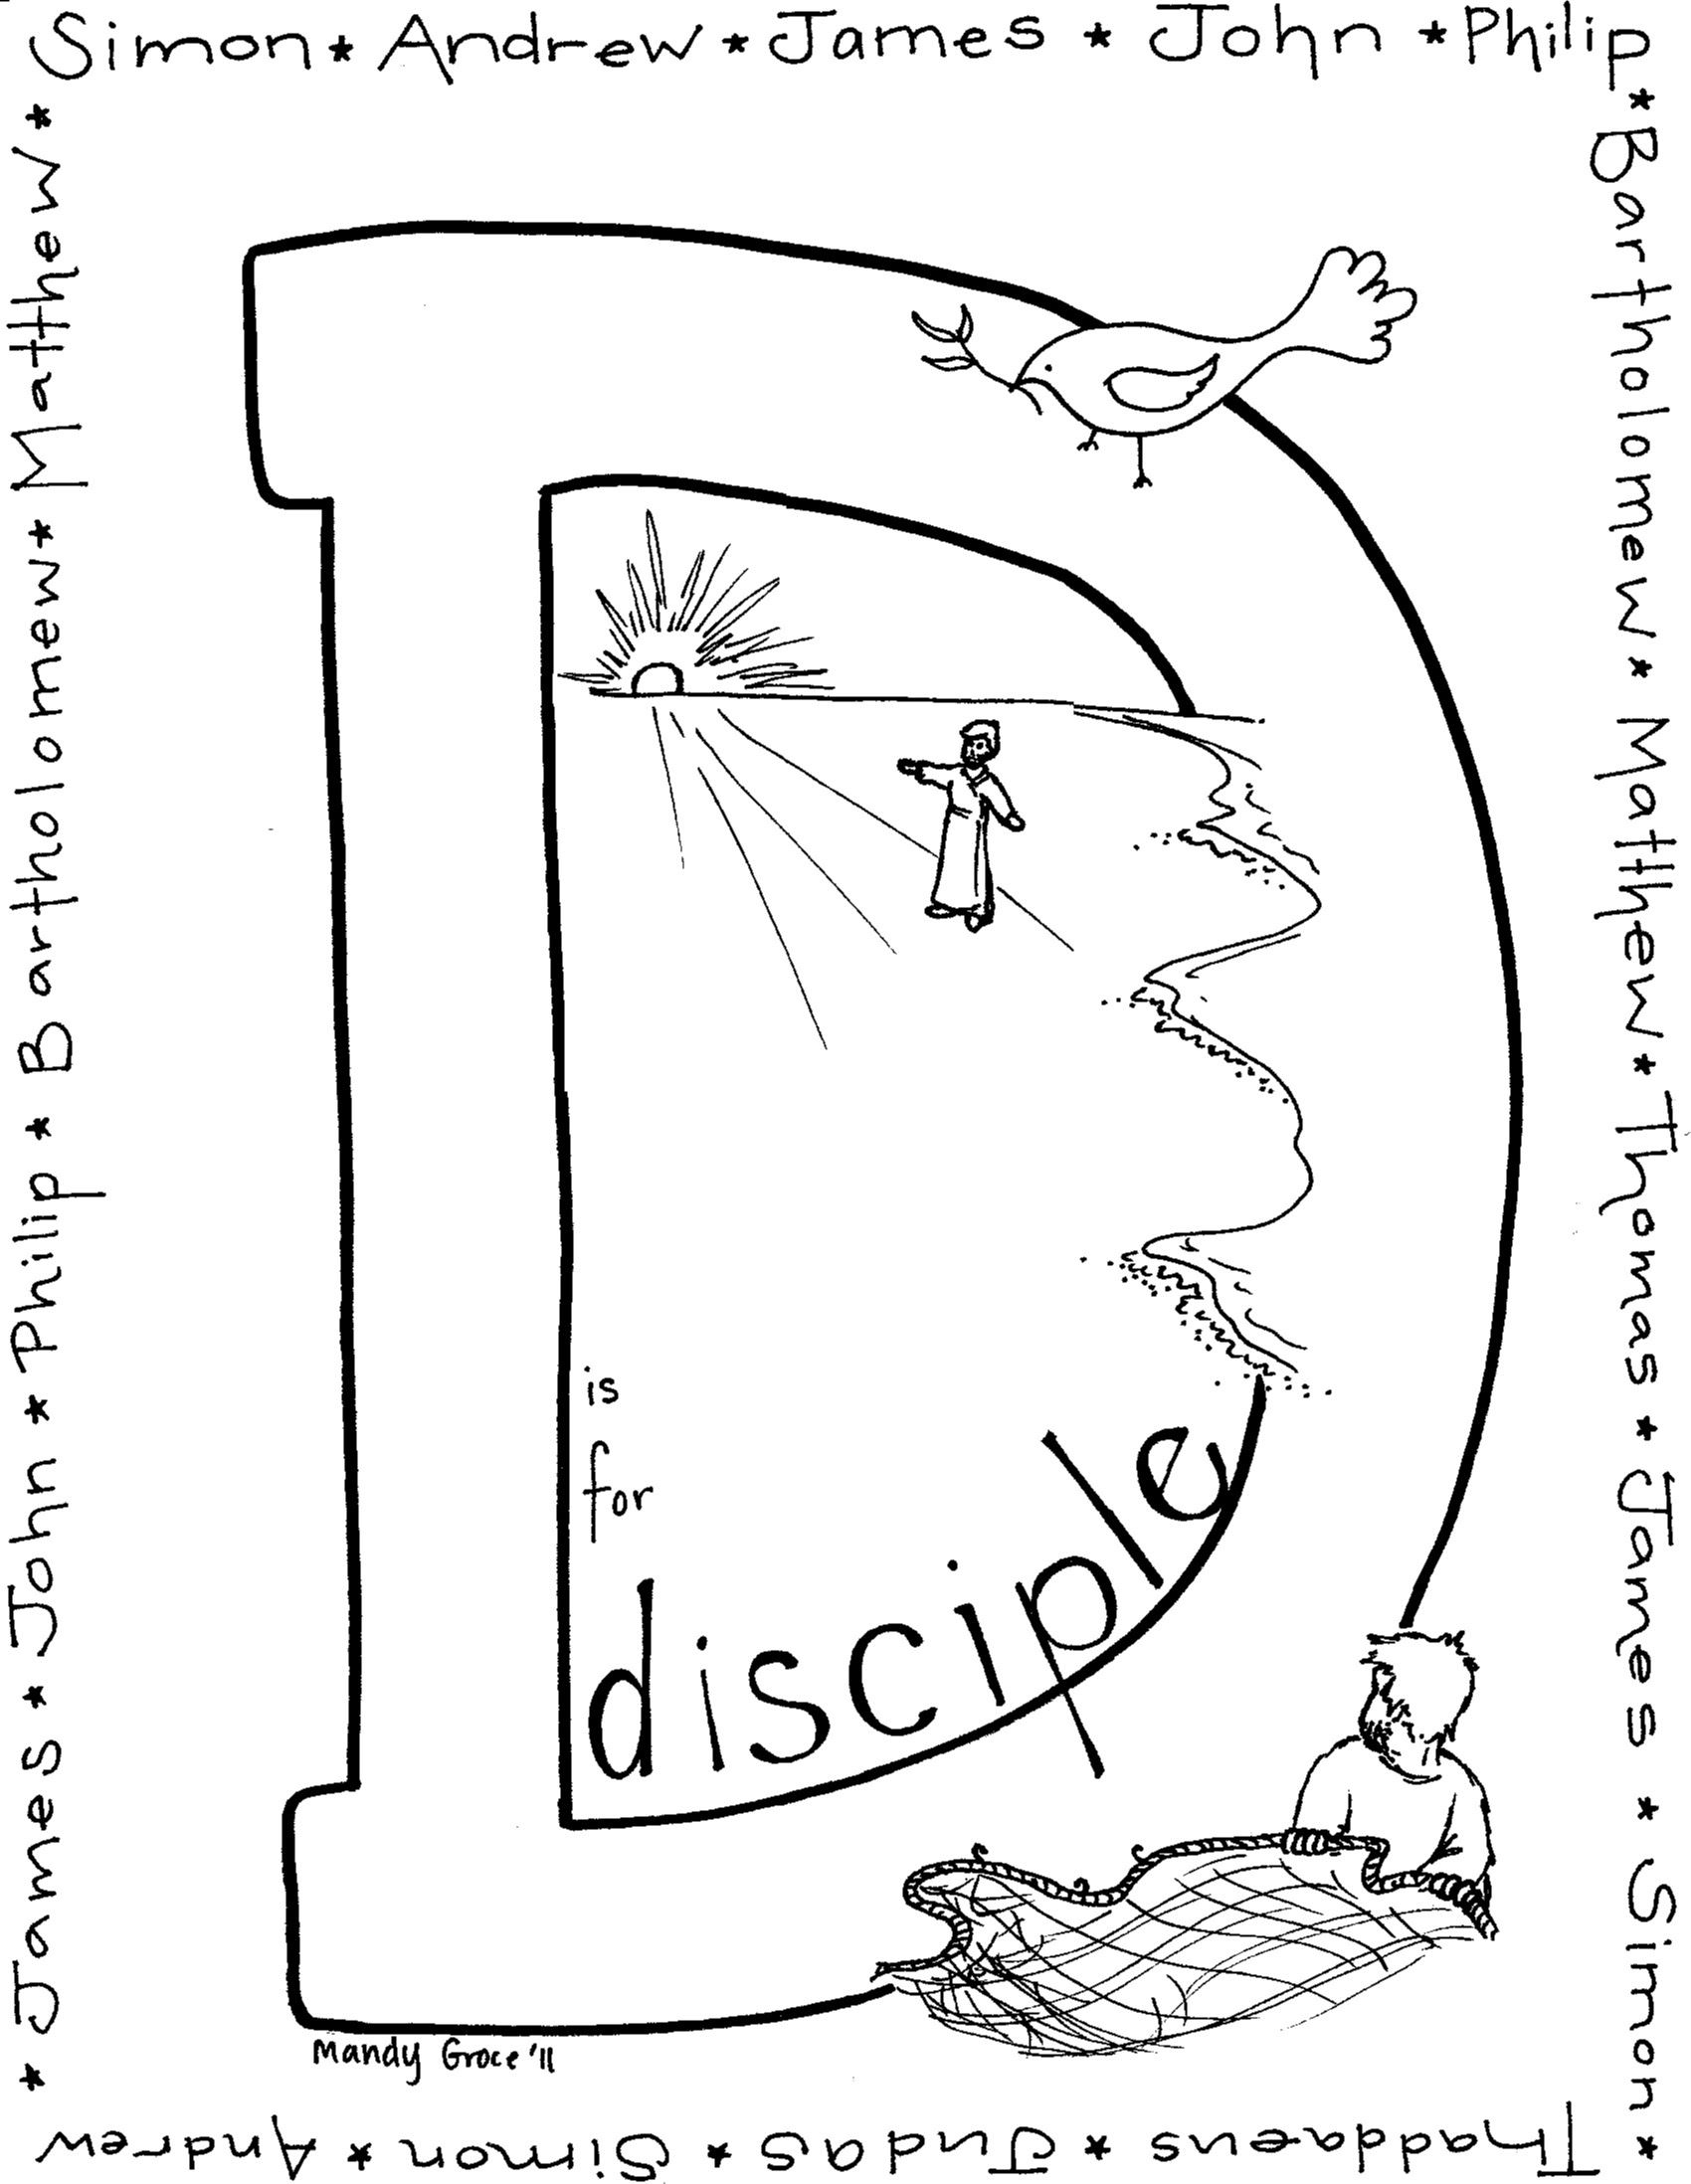 jesus and the 12 disciples coloring page jesus calls his disciples coloring page sketch coloring page page 12 the disciples jesus and coloring